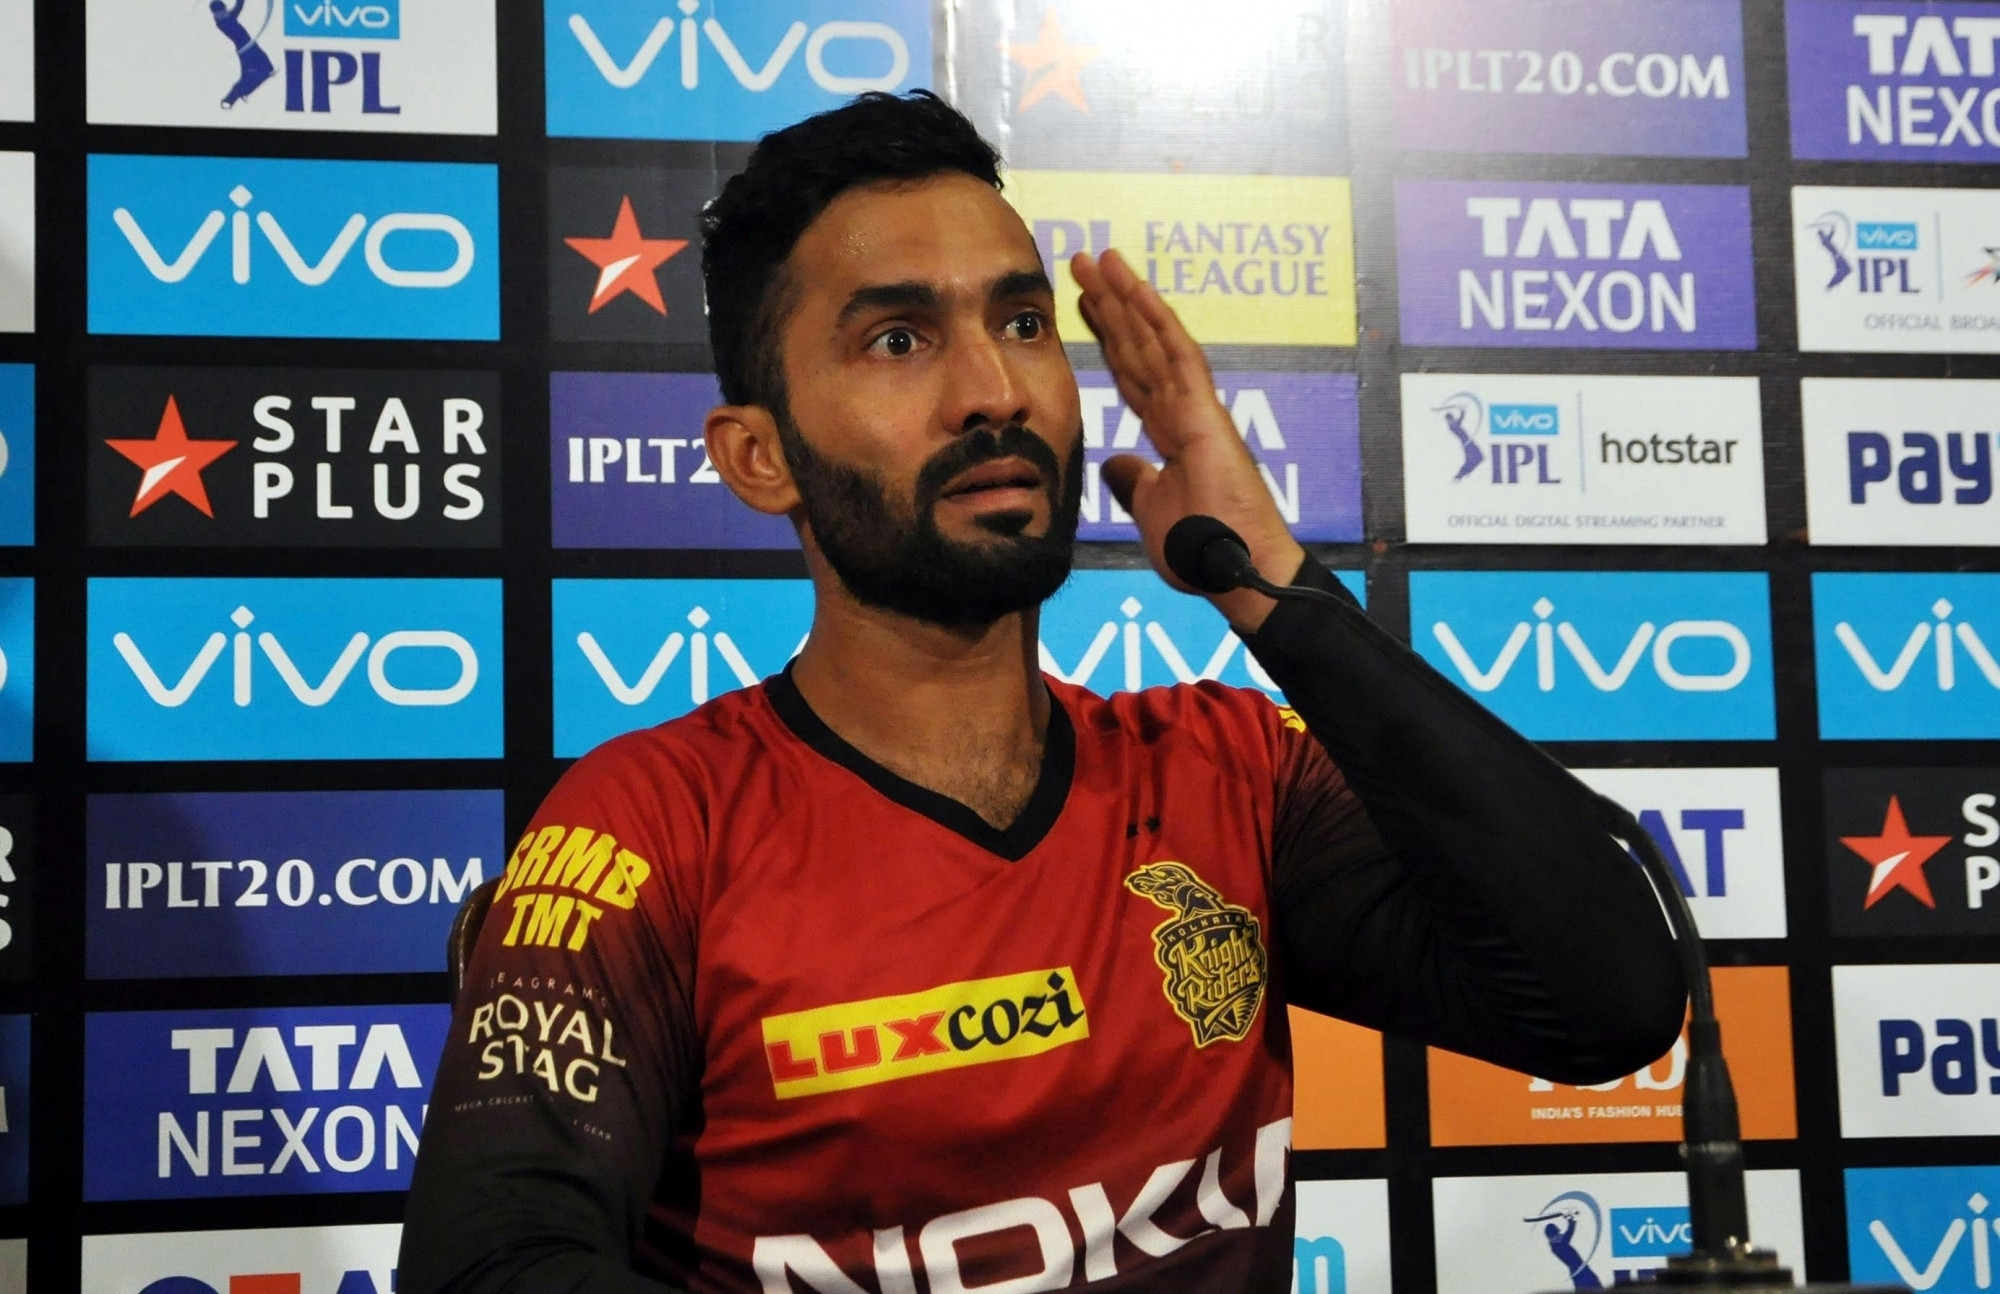 BCCI issues show-cause notice to Dinesh Karthik for attending CPL match